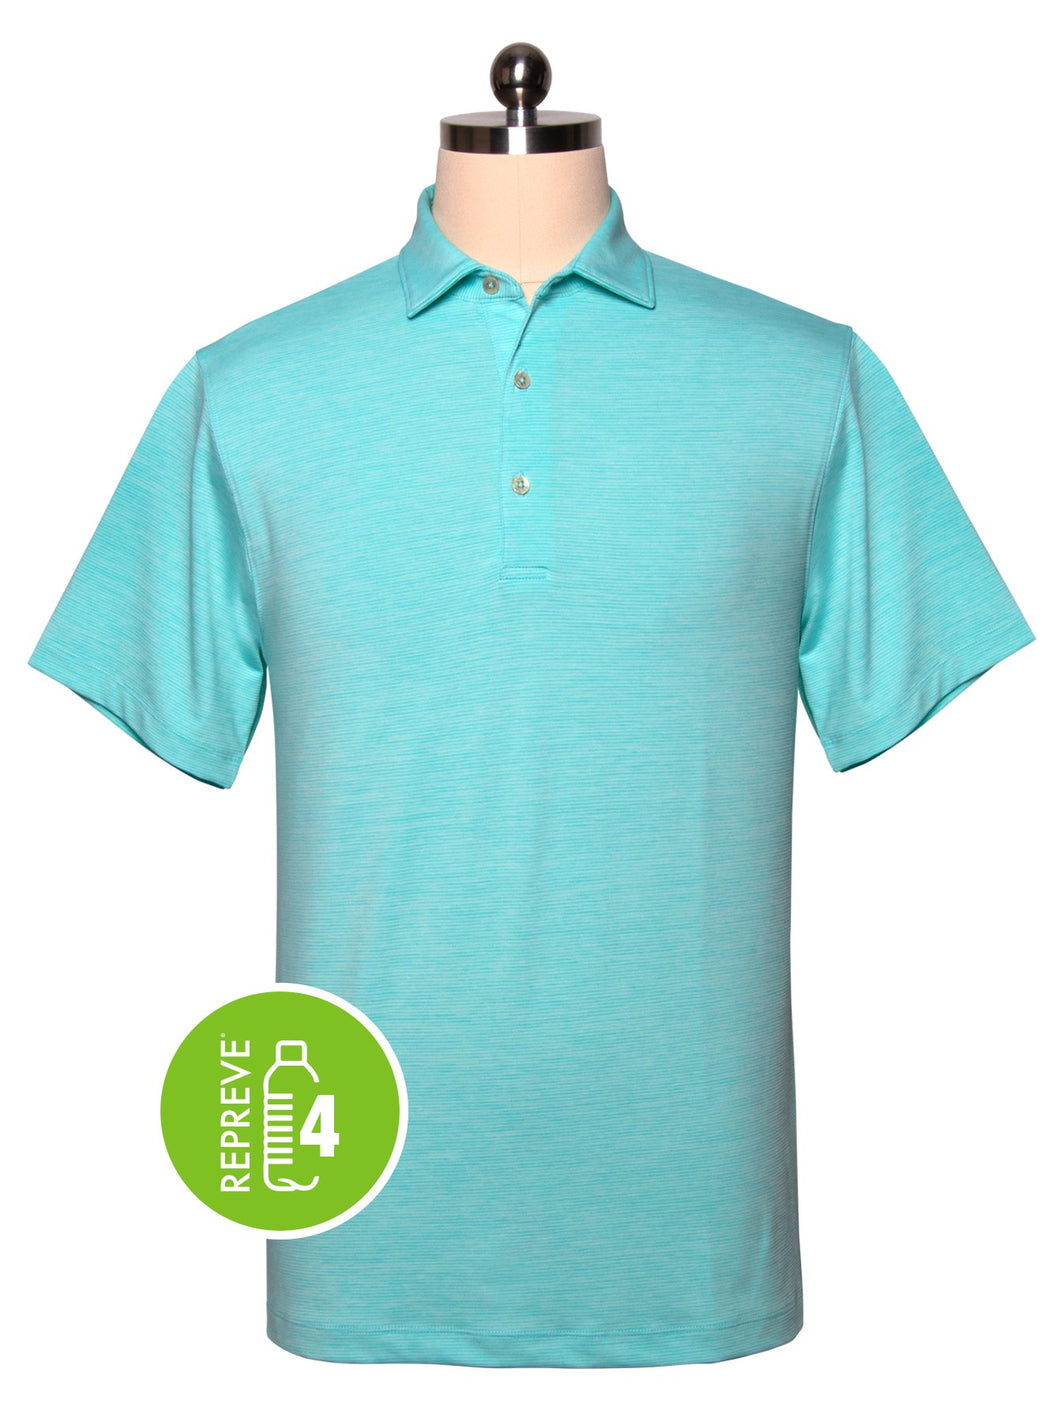 Bermuda Sands Carlton Reef Golf Shirt